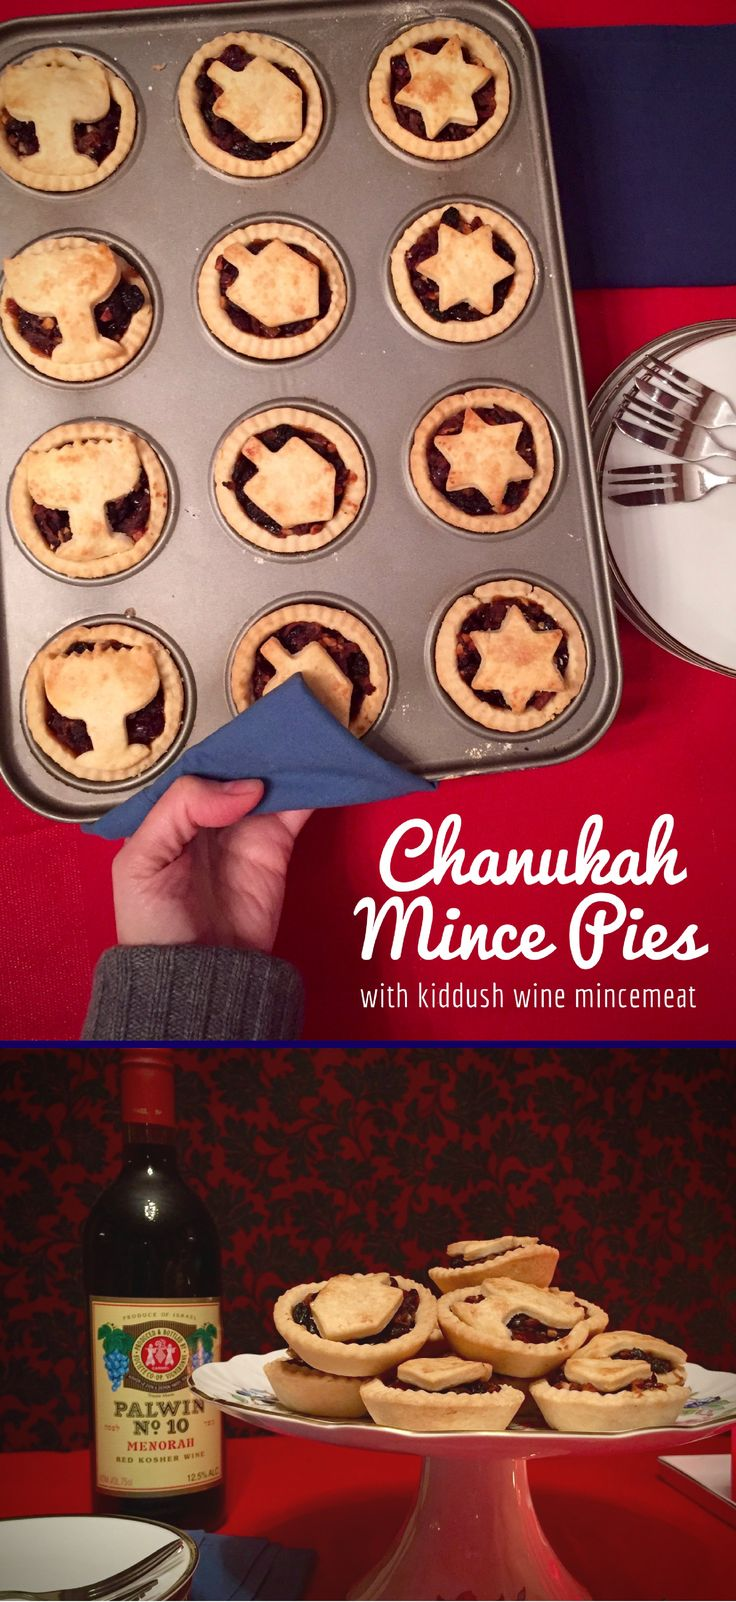 The quick & easy filling for these festive mince pies is fruity, sweet, spicy and delicious, enhanced with kiddush wine and rum! Make a batch today